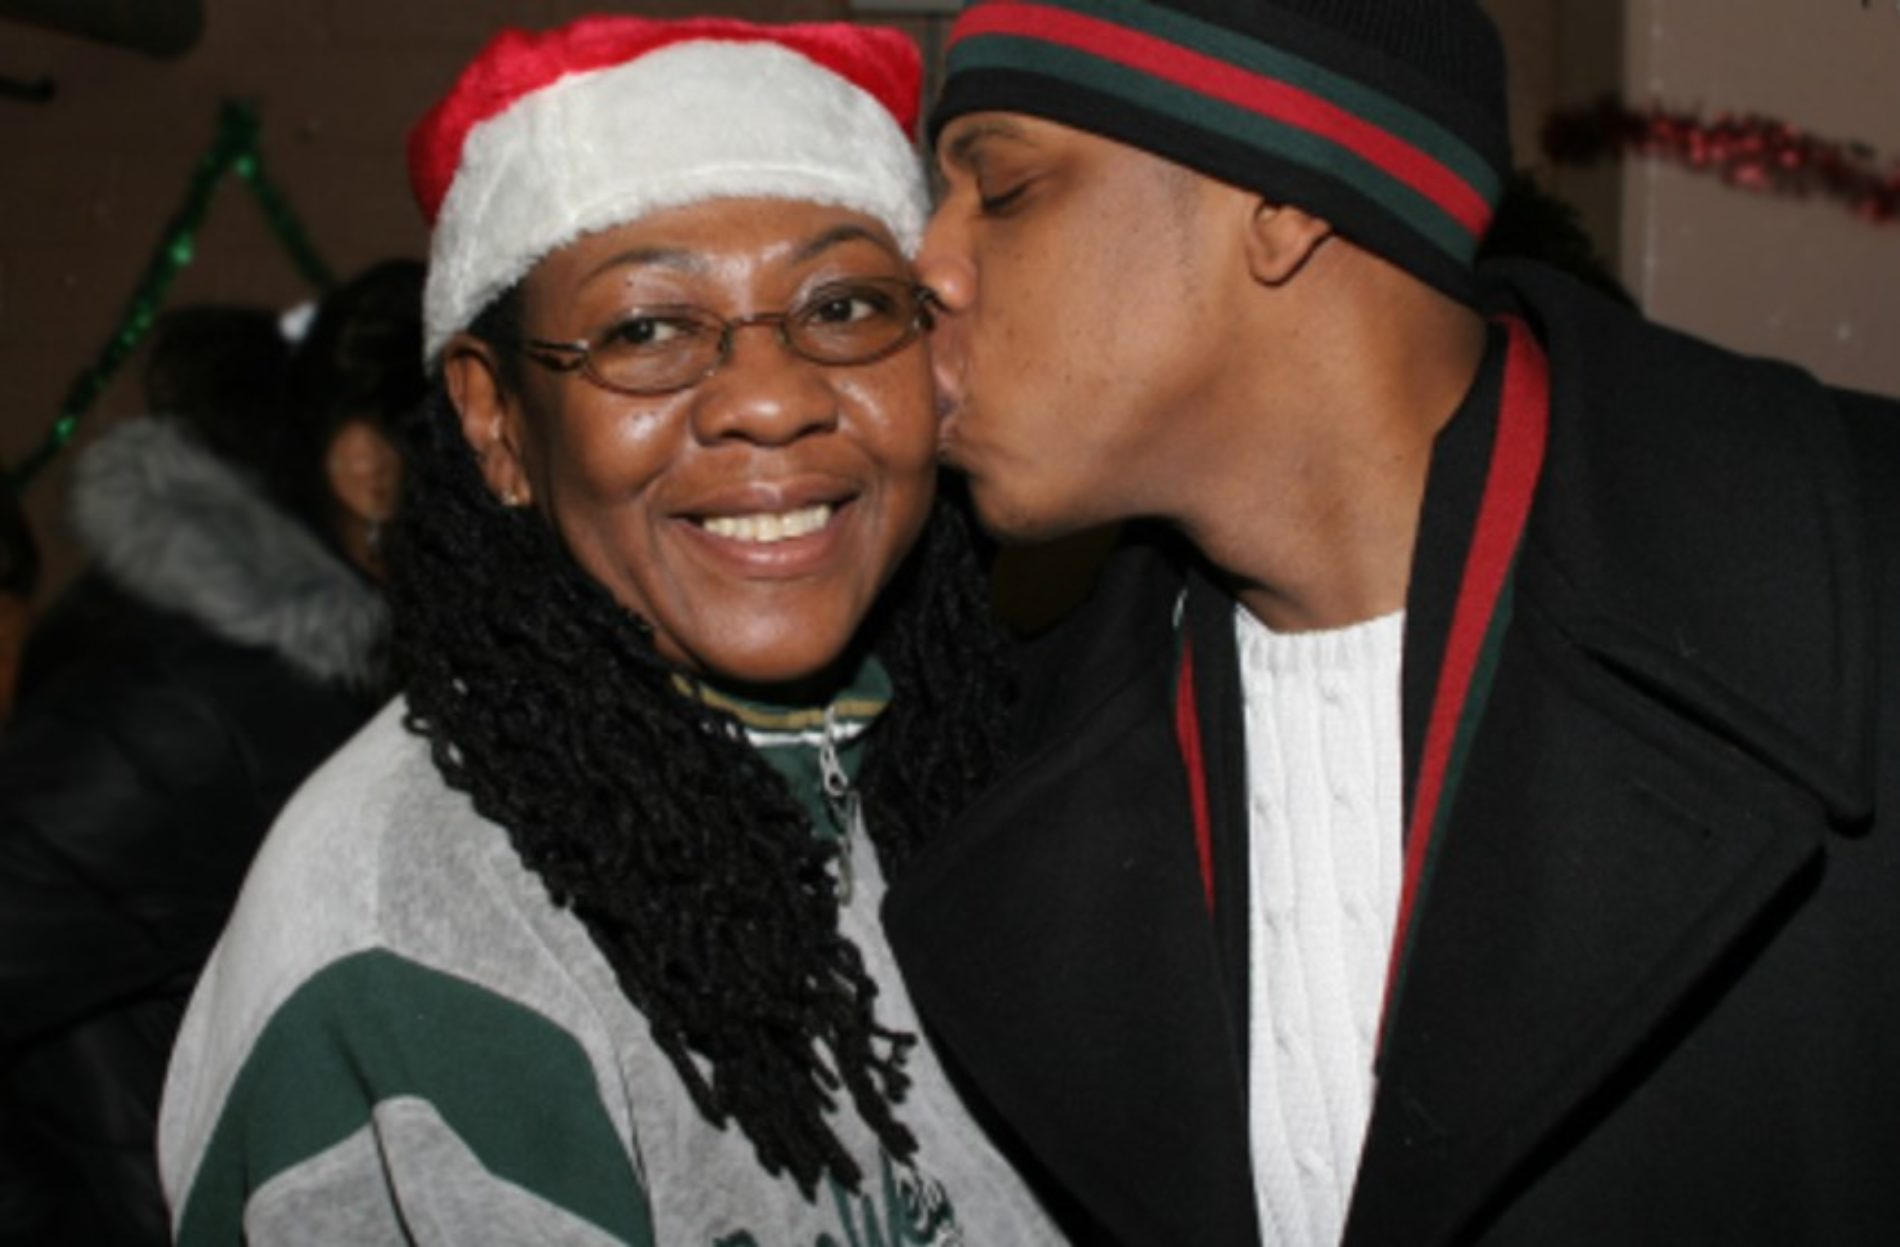 Jay-Z says his mom didn't want to come out